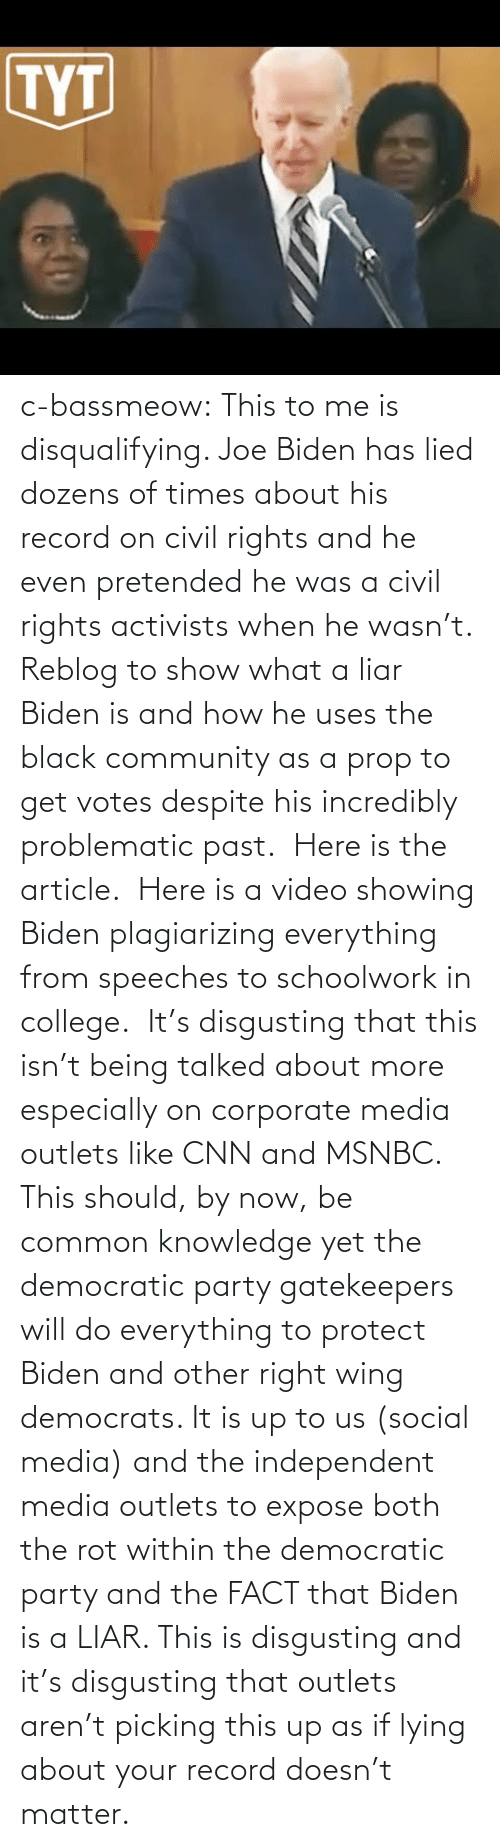 Rights: c-bassmeow: This to me is disqualifying. Joe Biden has lied dozens of times about his record on civil rights and he even pretended he was a civil rights activists when he wasn't. Reblog to show what a liar Biden is and how he uses the black community as a prop to get votes despite his incredibly problematic past.   Here is the article.   Here is a video showing Biden plagiarizing everything from speeches to schoolwork in college.   It's disgusting that this isn't being talked about more especially on corporate media outlets like CNN and MSNBC. This should, by now, be common knowledge yet the democratic party gatekeepers will do everything to protect Biden and other right wing democrats. It is up to us (social media) and the independent media outlets to expose both the rot within the democratic party and the FACT that Biden is a LIAR. This is disgusting and it's disgusting that outlets aren't picking this up as if lying about your record doesn't matter.